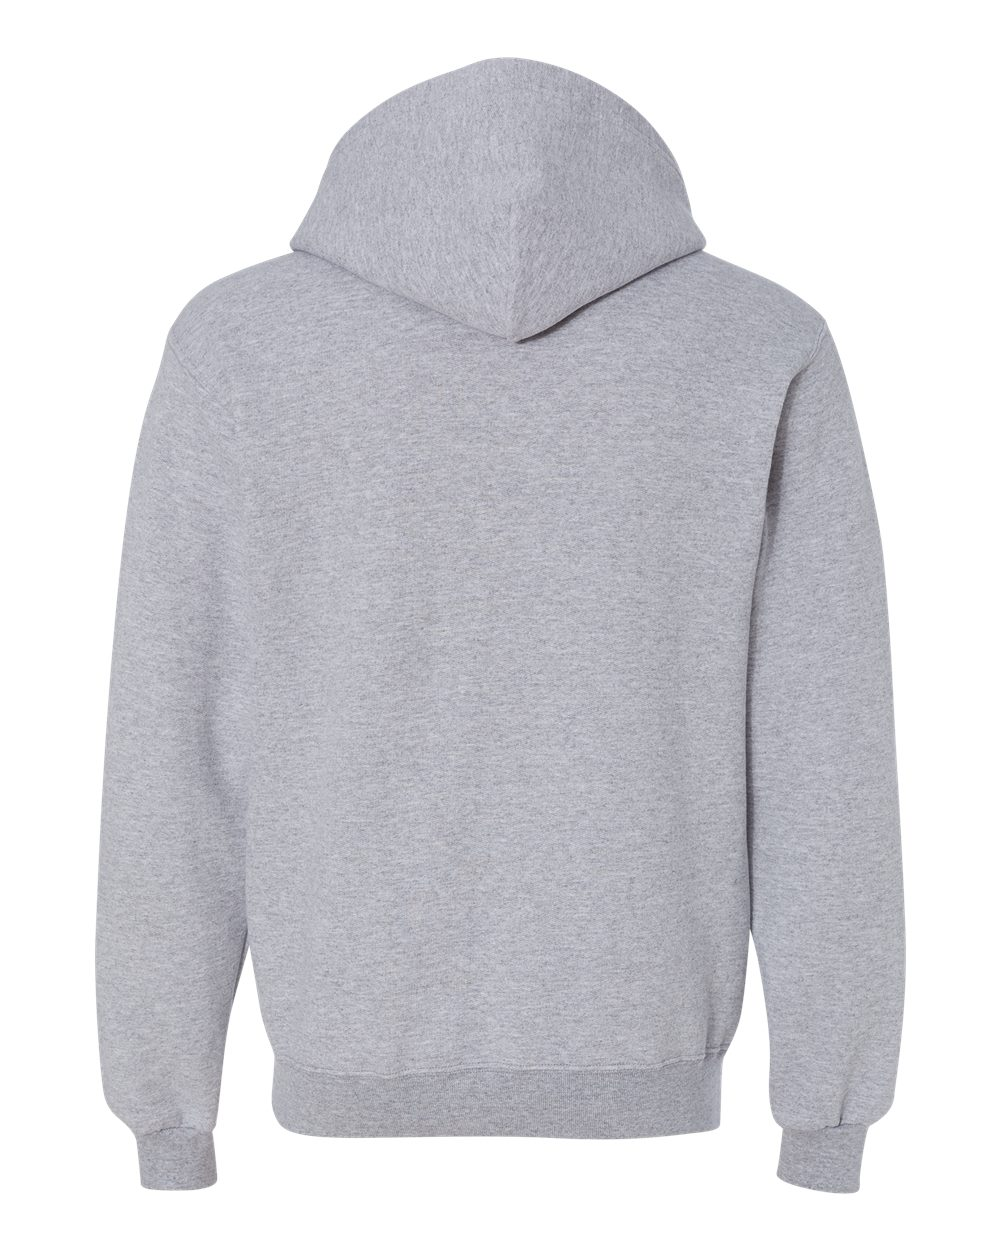 Fruit-of-the-Loom-Mens-Sofspun-Hooded-Full-Zip-Sweatshirt-Blank-SF73R-up-to-3XL thumbnail 10